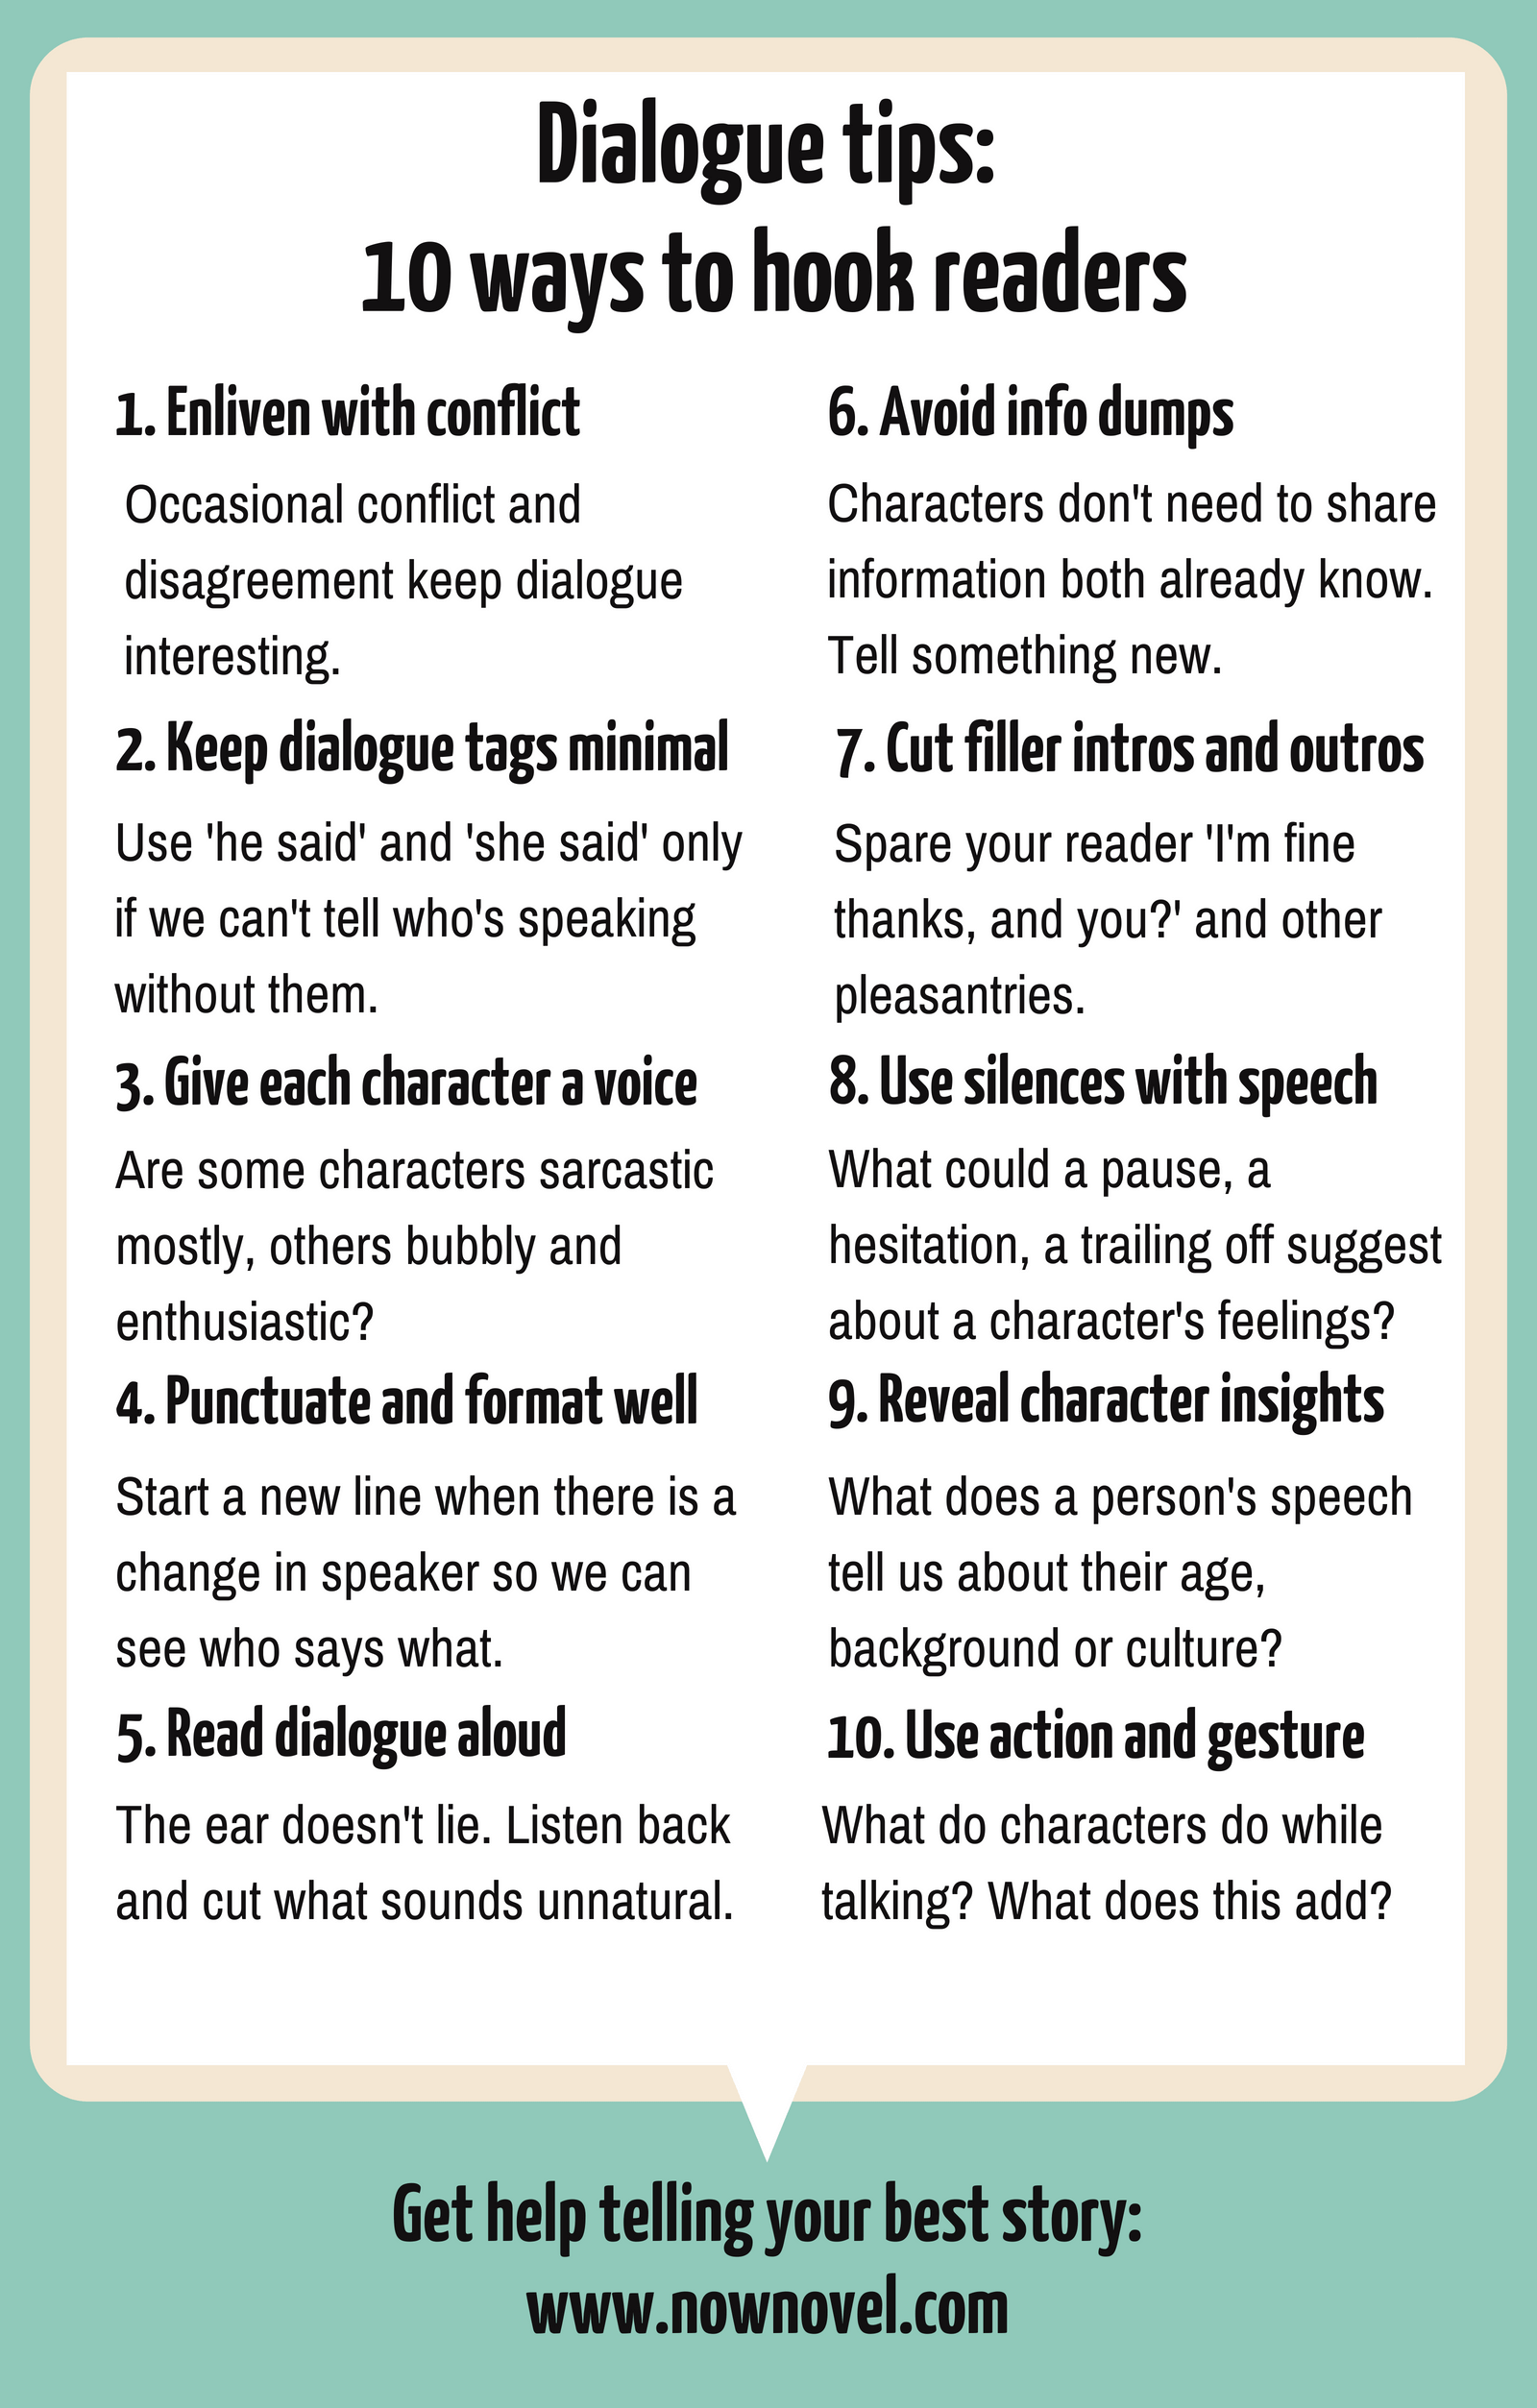 10 Dialogue Tips To Hook Readers